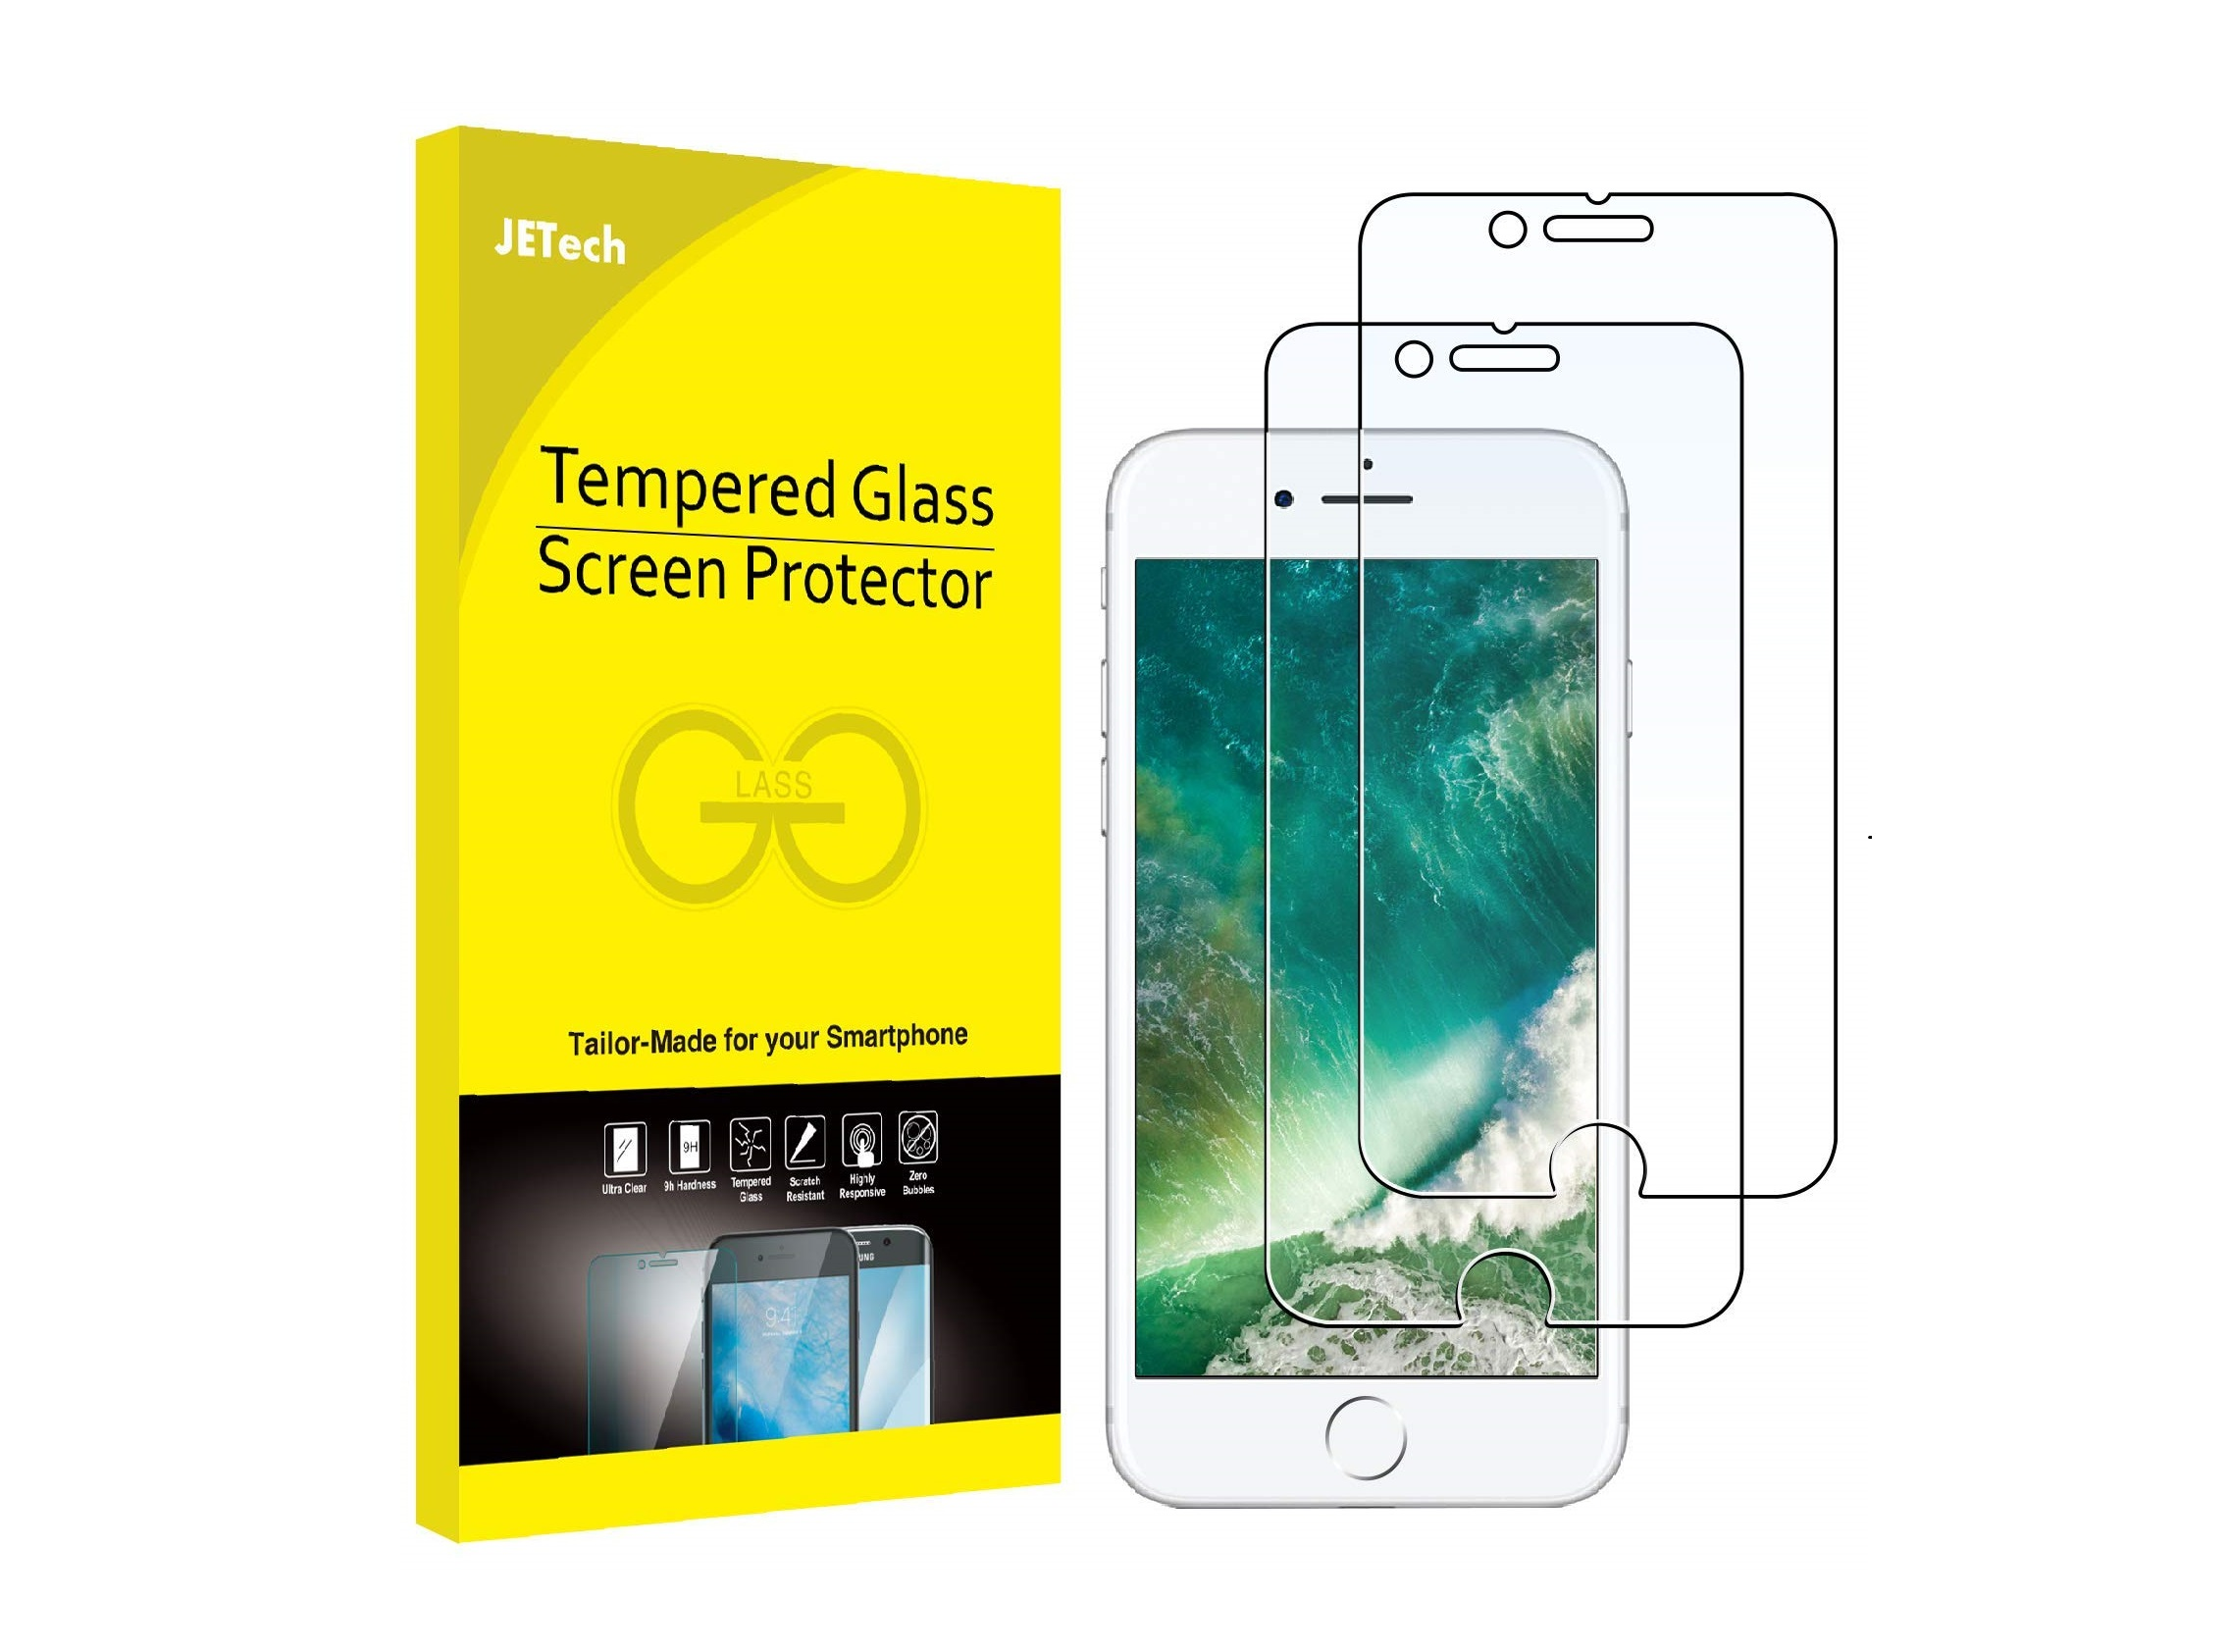 TOP 5 BEST IPHONE SCREEN PROTECTOR GLASS IN 2019 REVIEWS